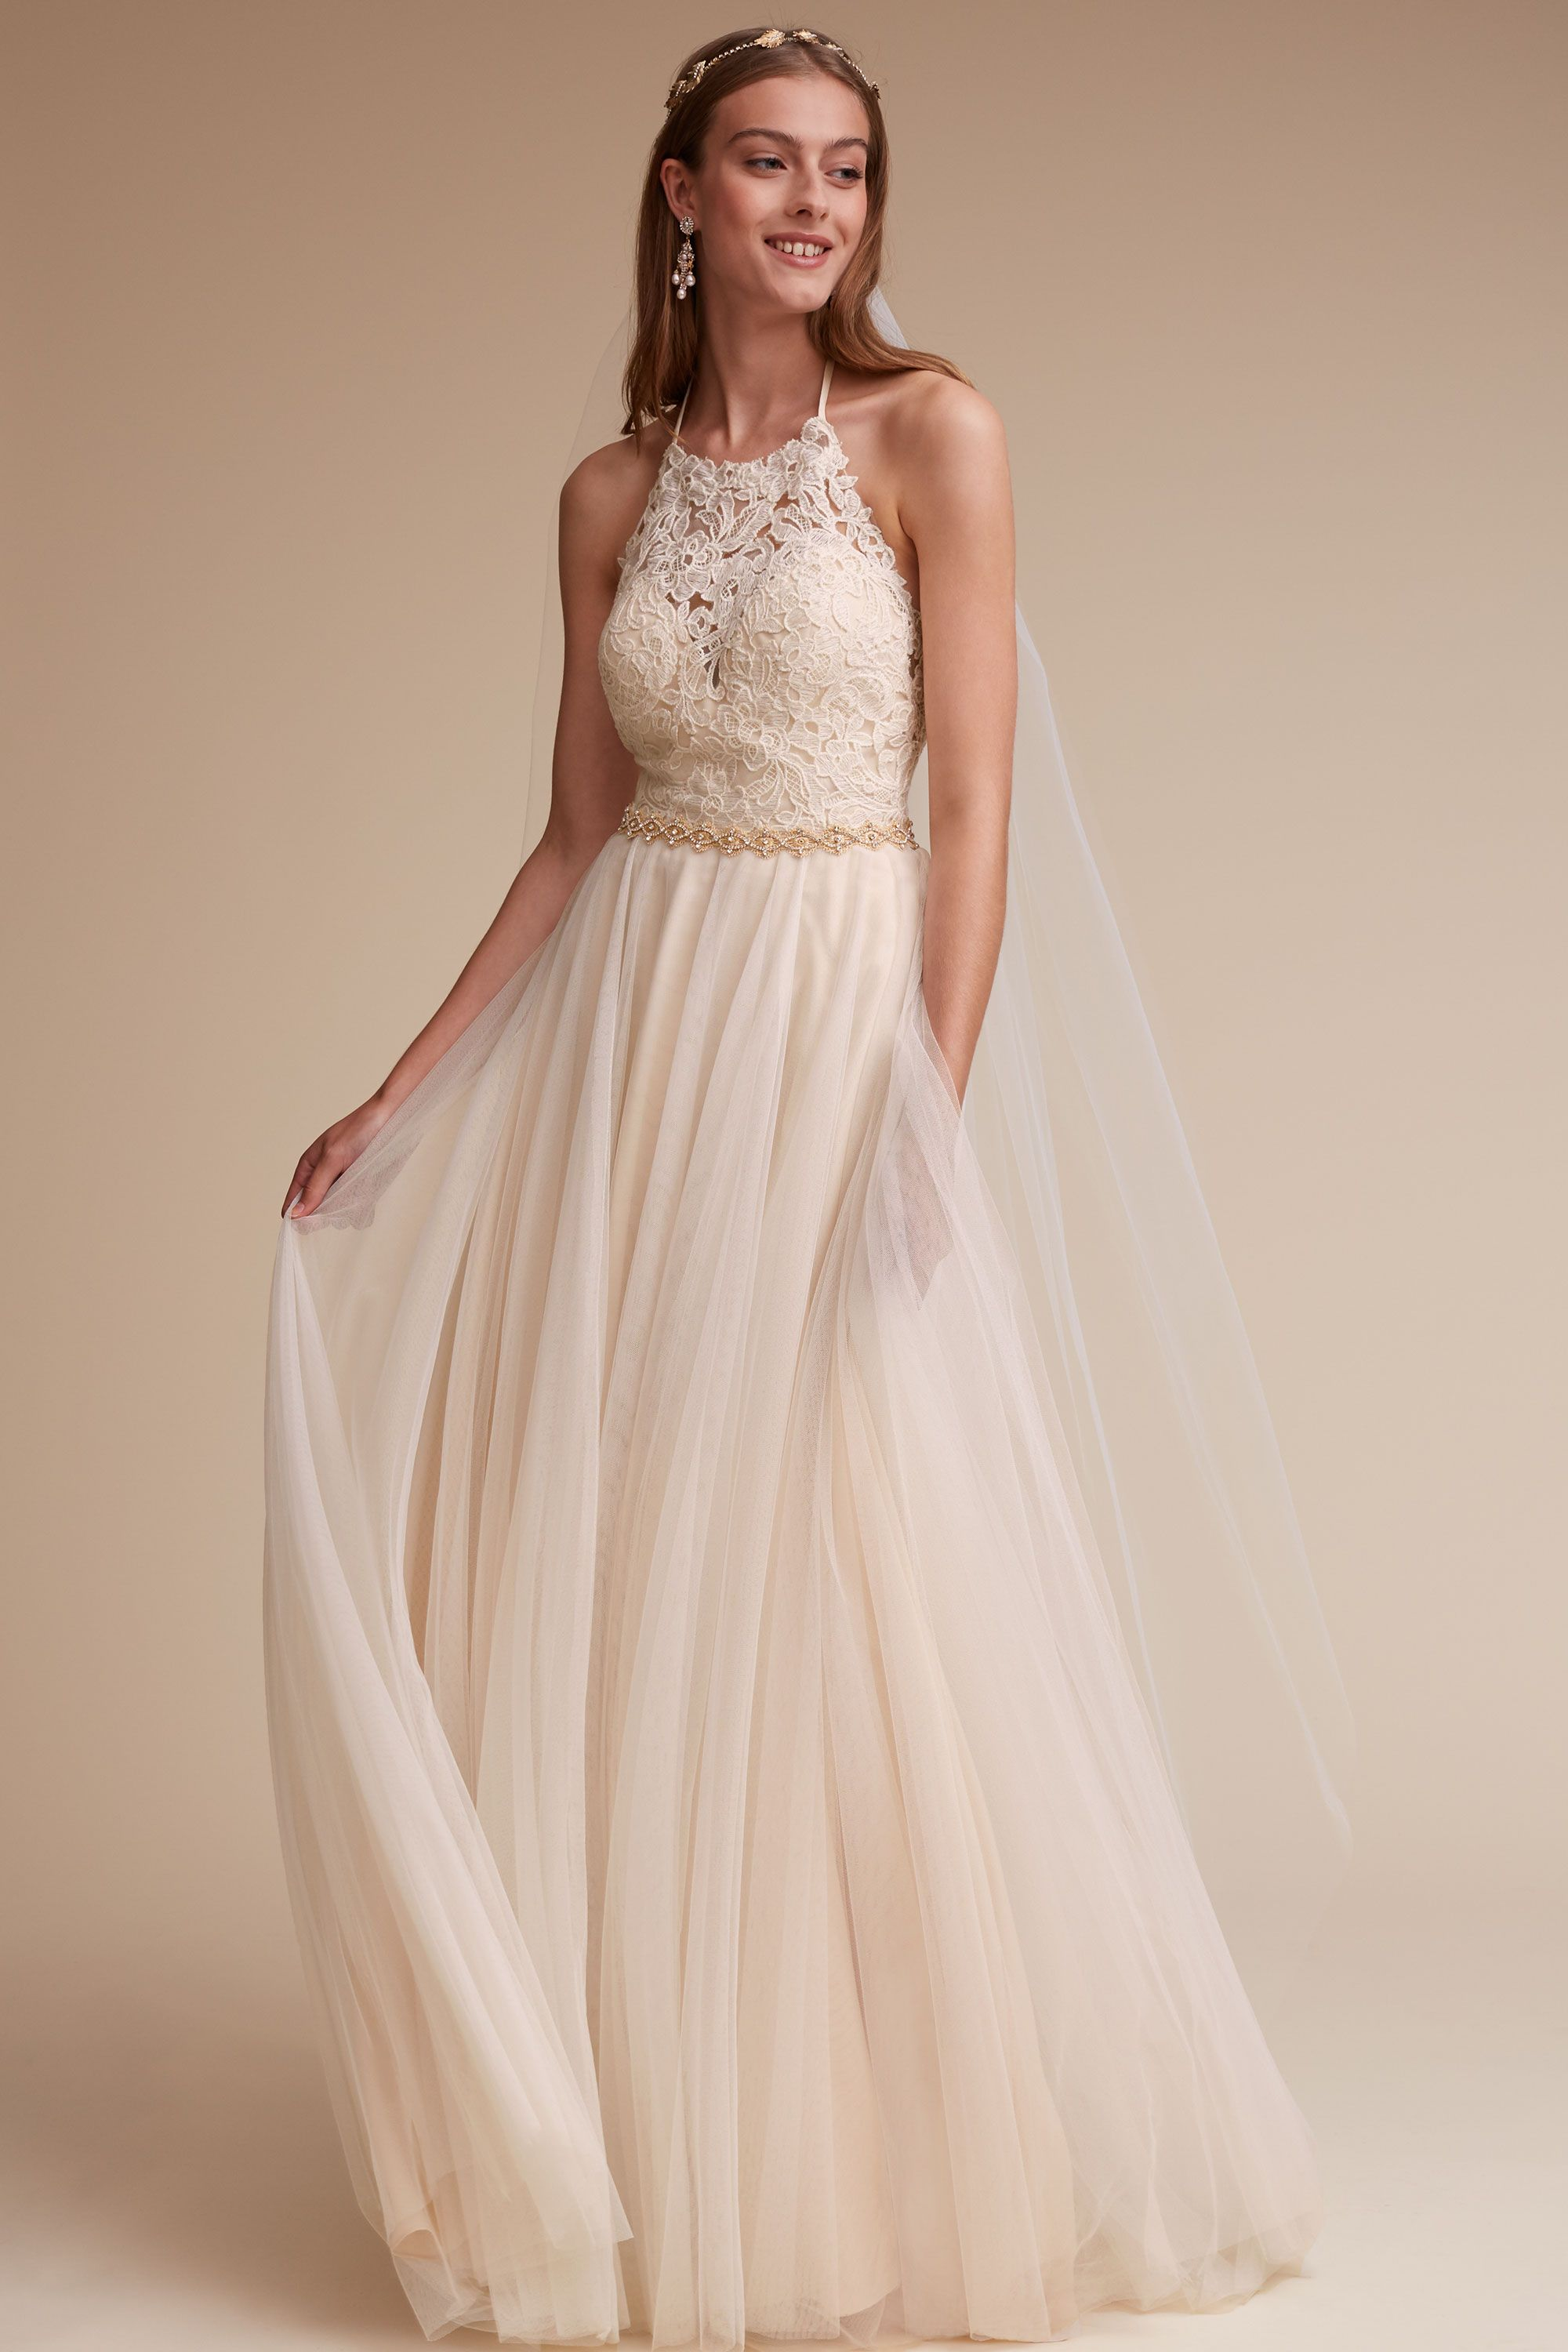 Backless Wedding Dresses Low Back Wedding Gowns BHLDN